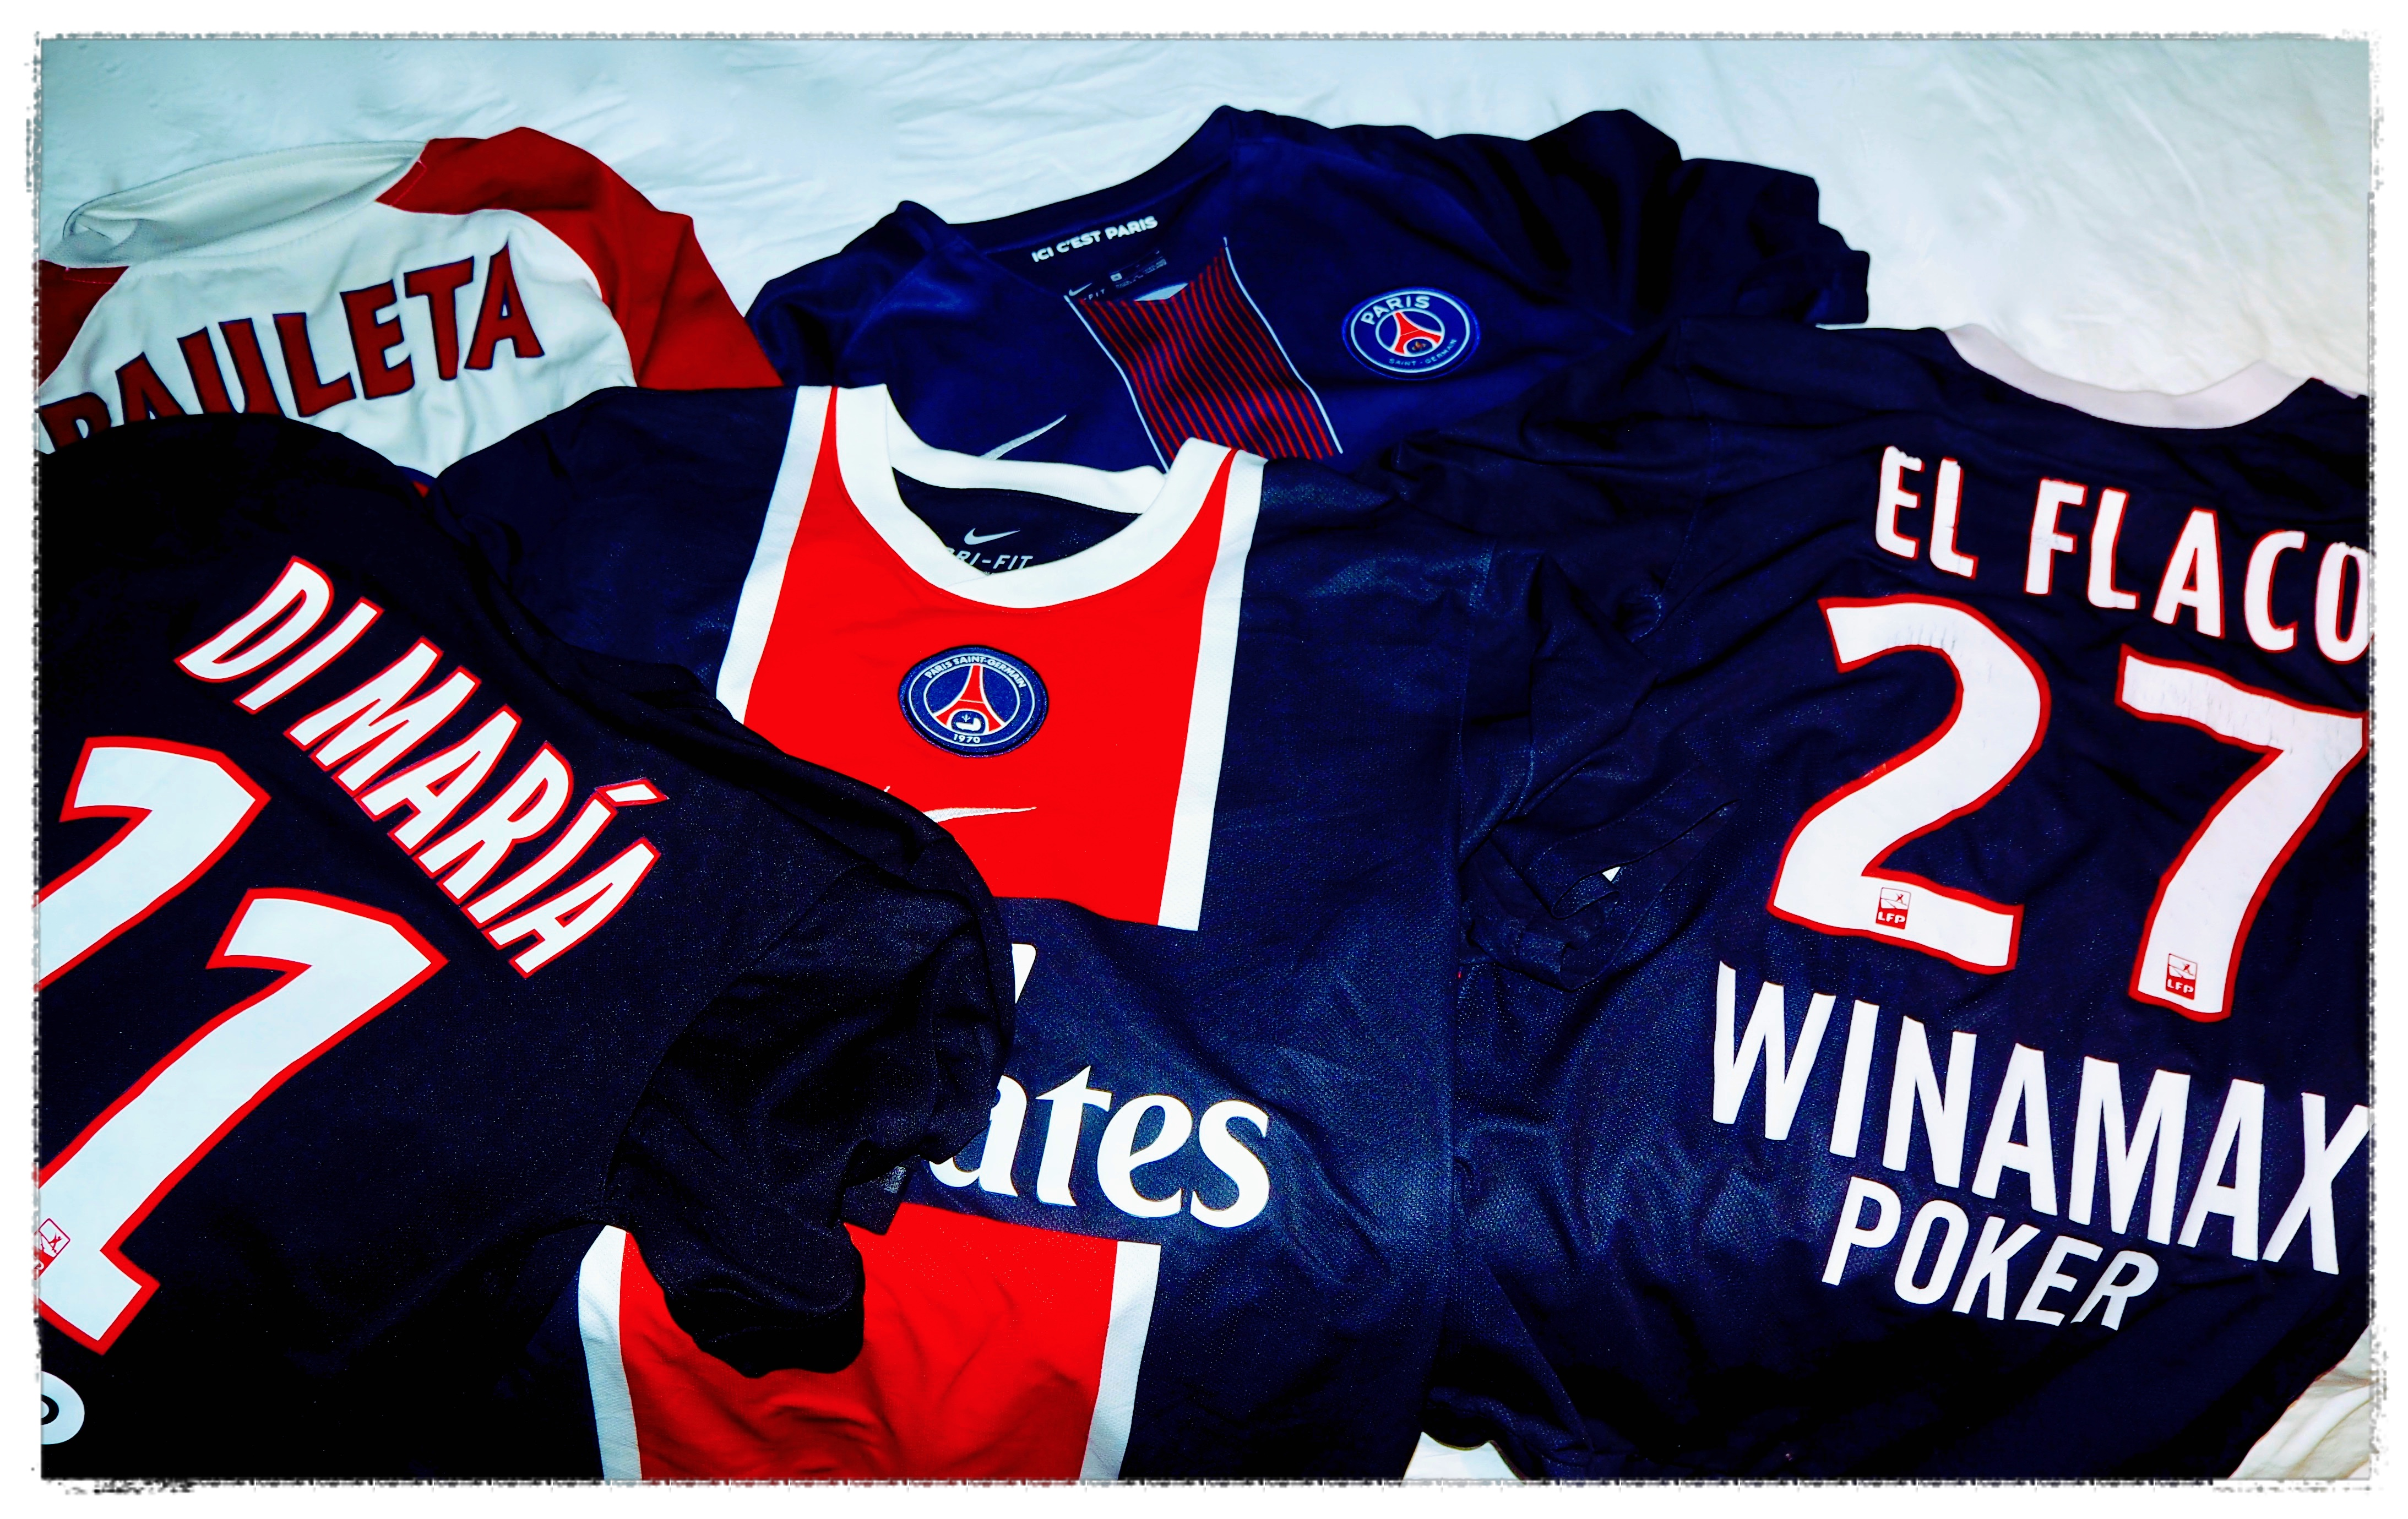 ligue-1-champions-league-psg